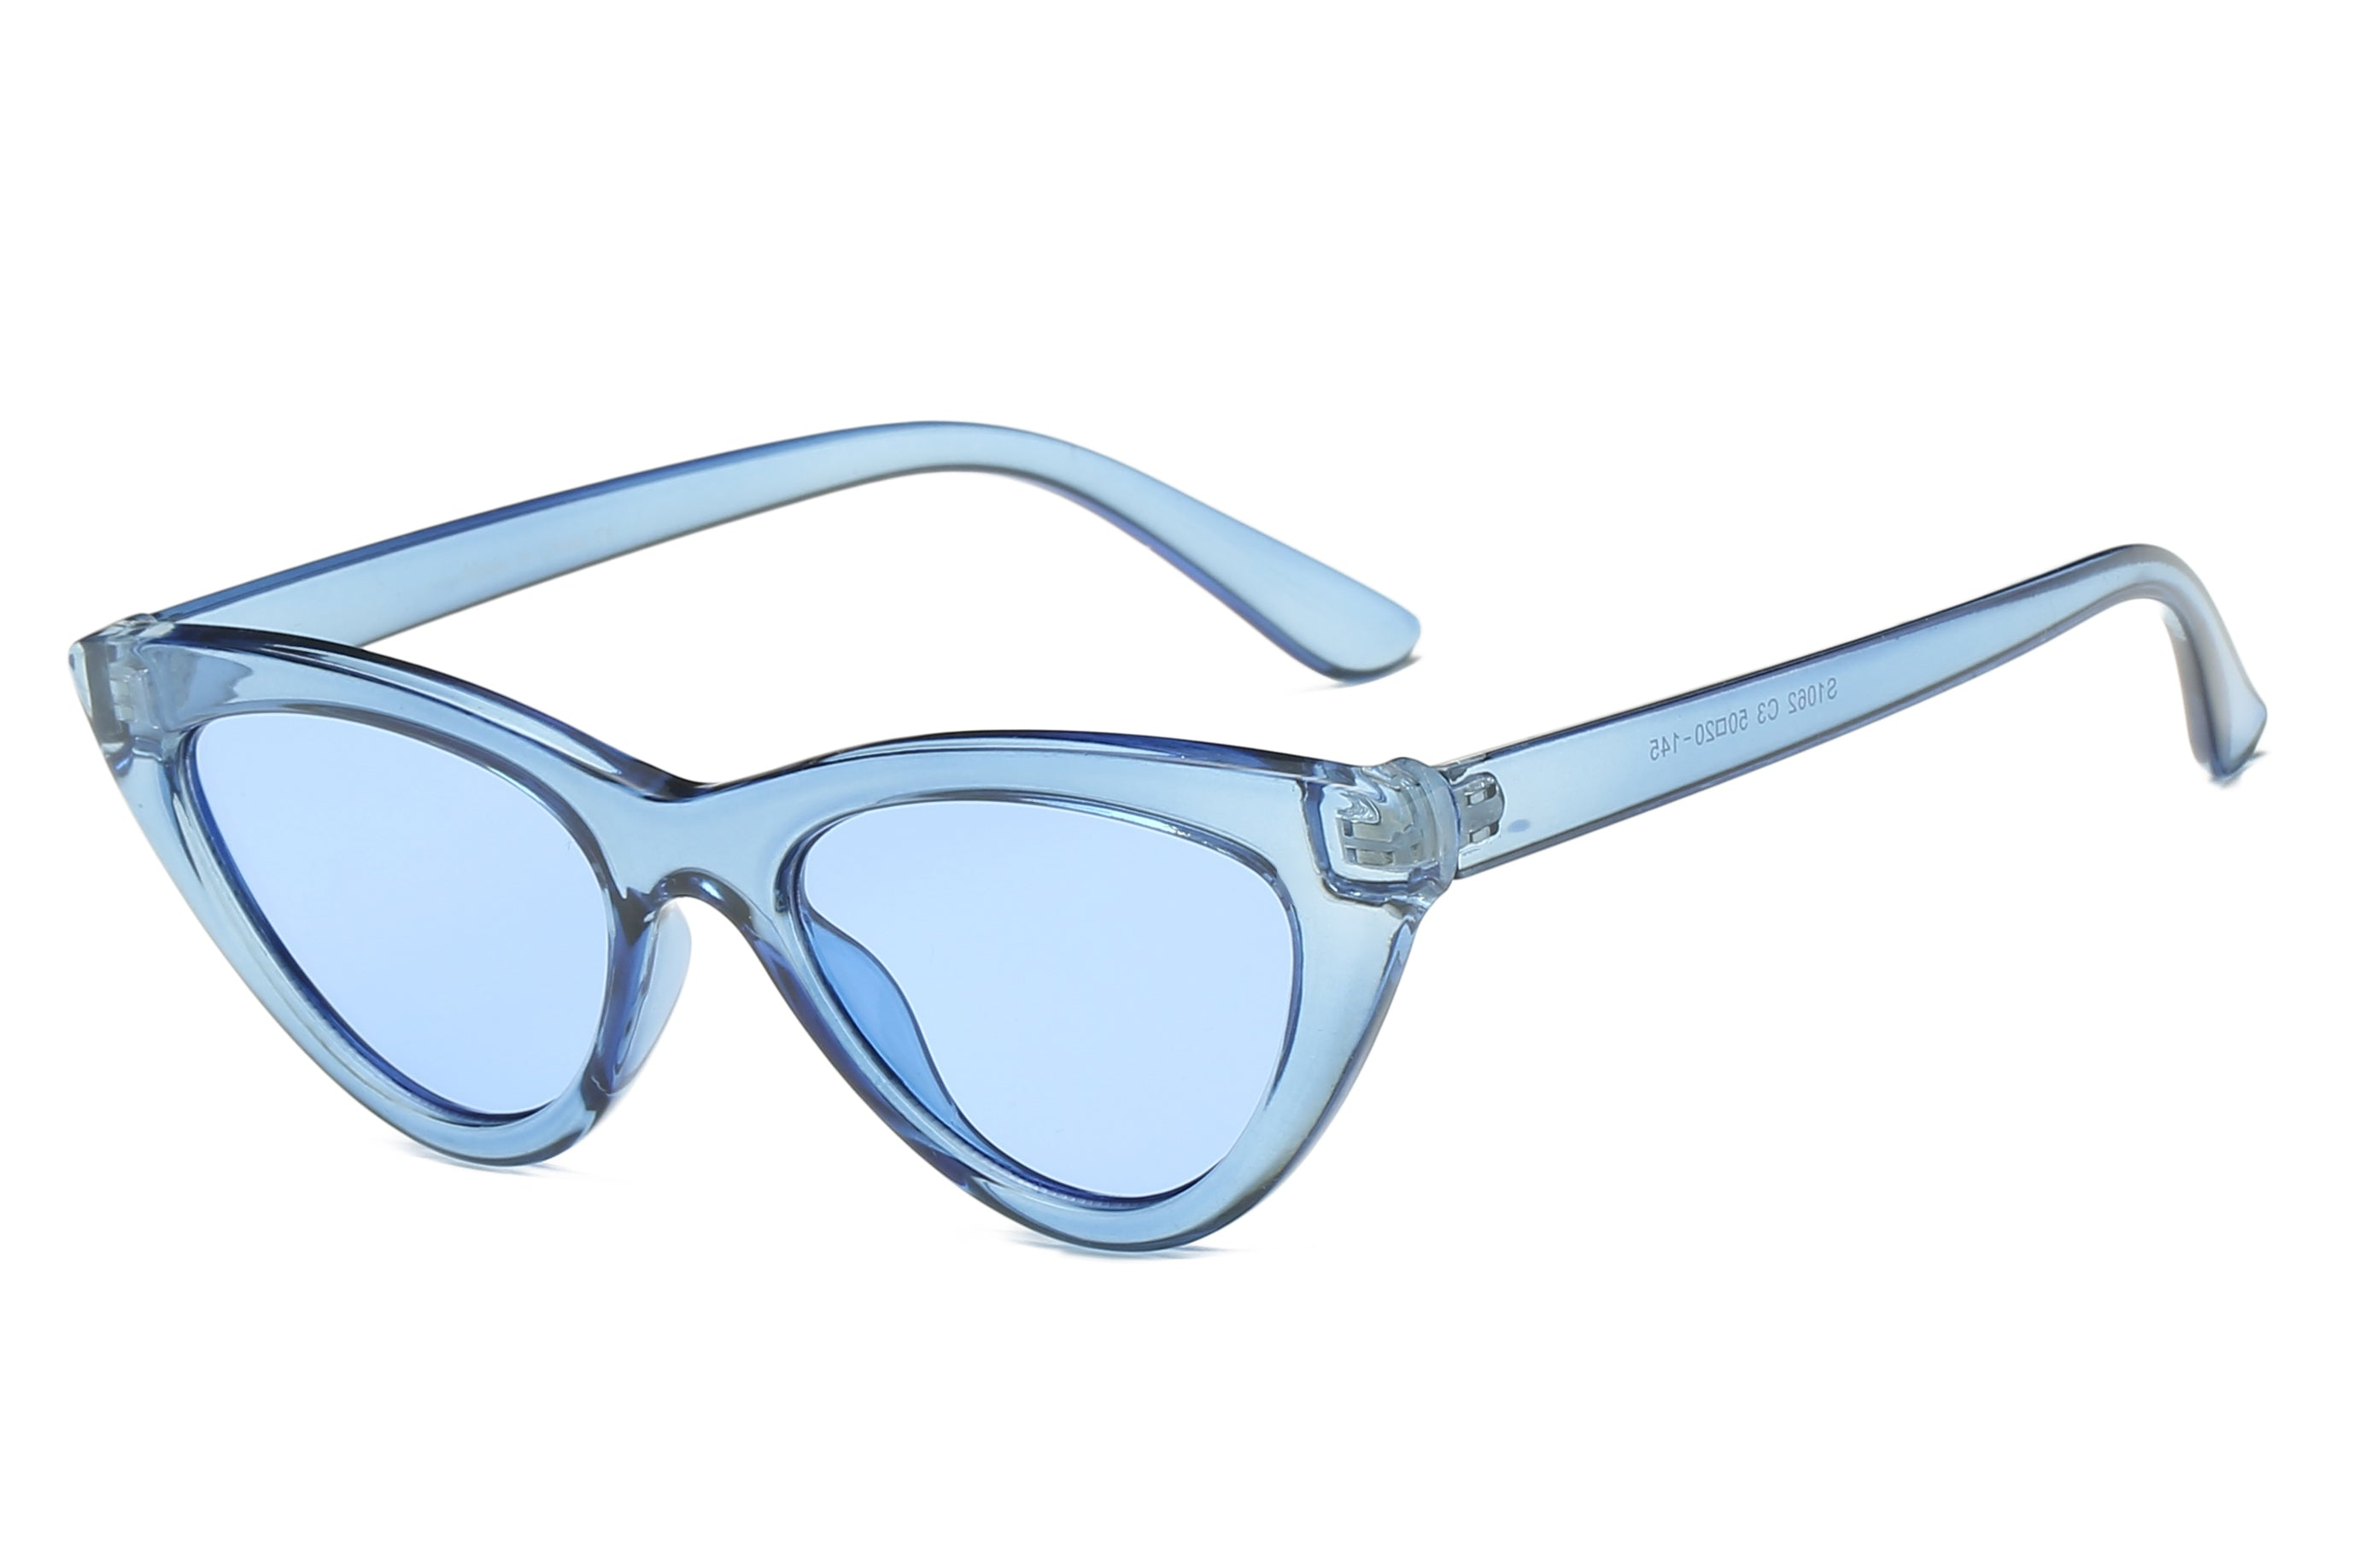 women retro vintage cat eye sunglasses with clear blue frame and tinted blue lens